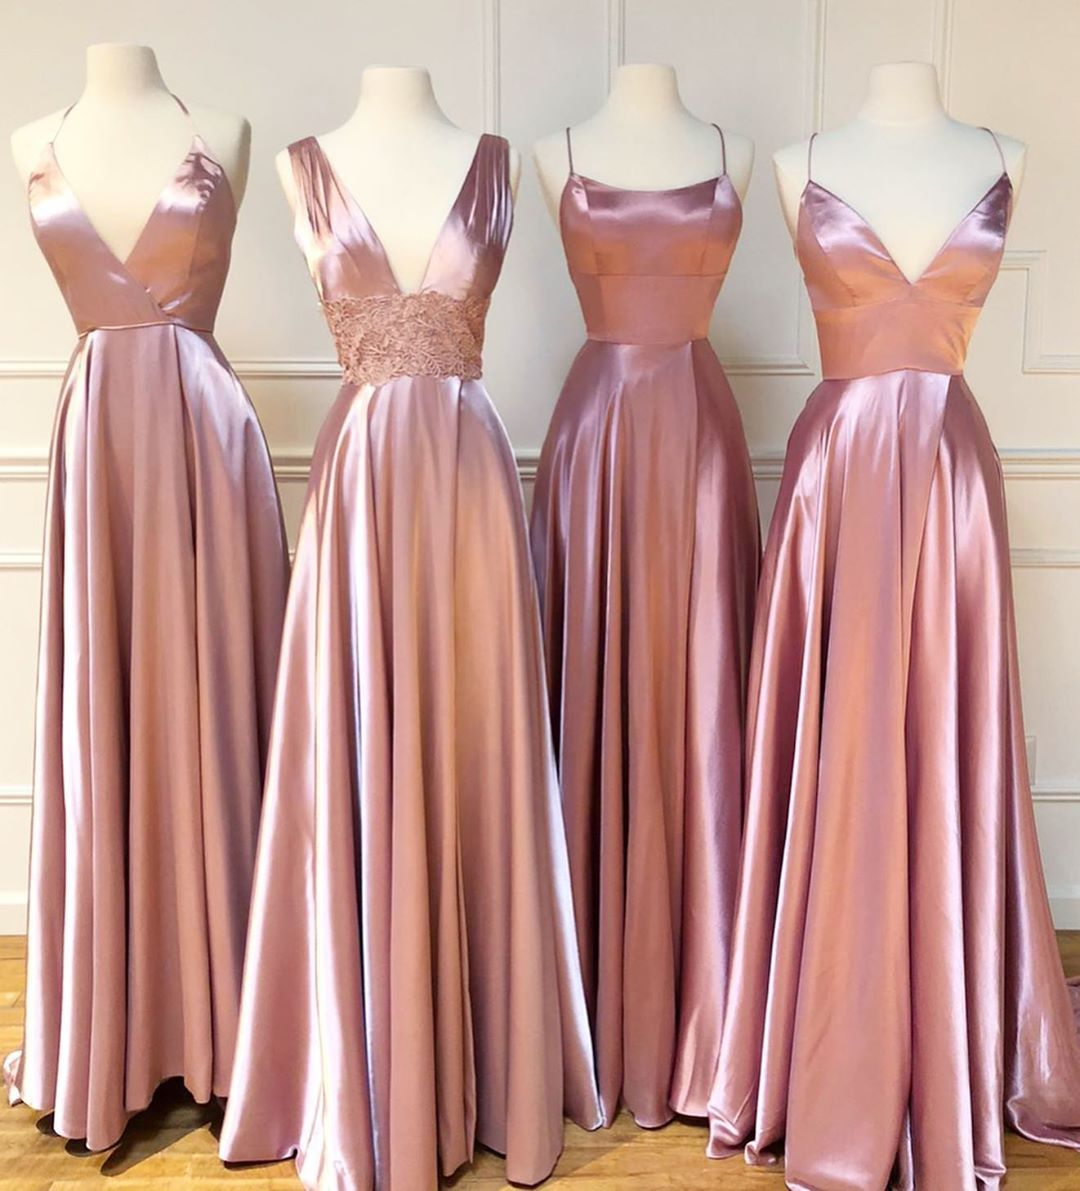 2020 Long Pink Bridesmaid Dresses For Wedding Party A Line Plus Size Women Dress Gowns